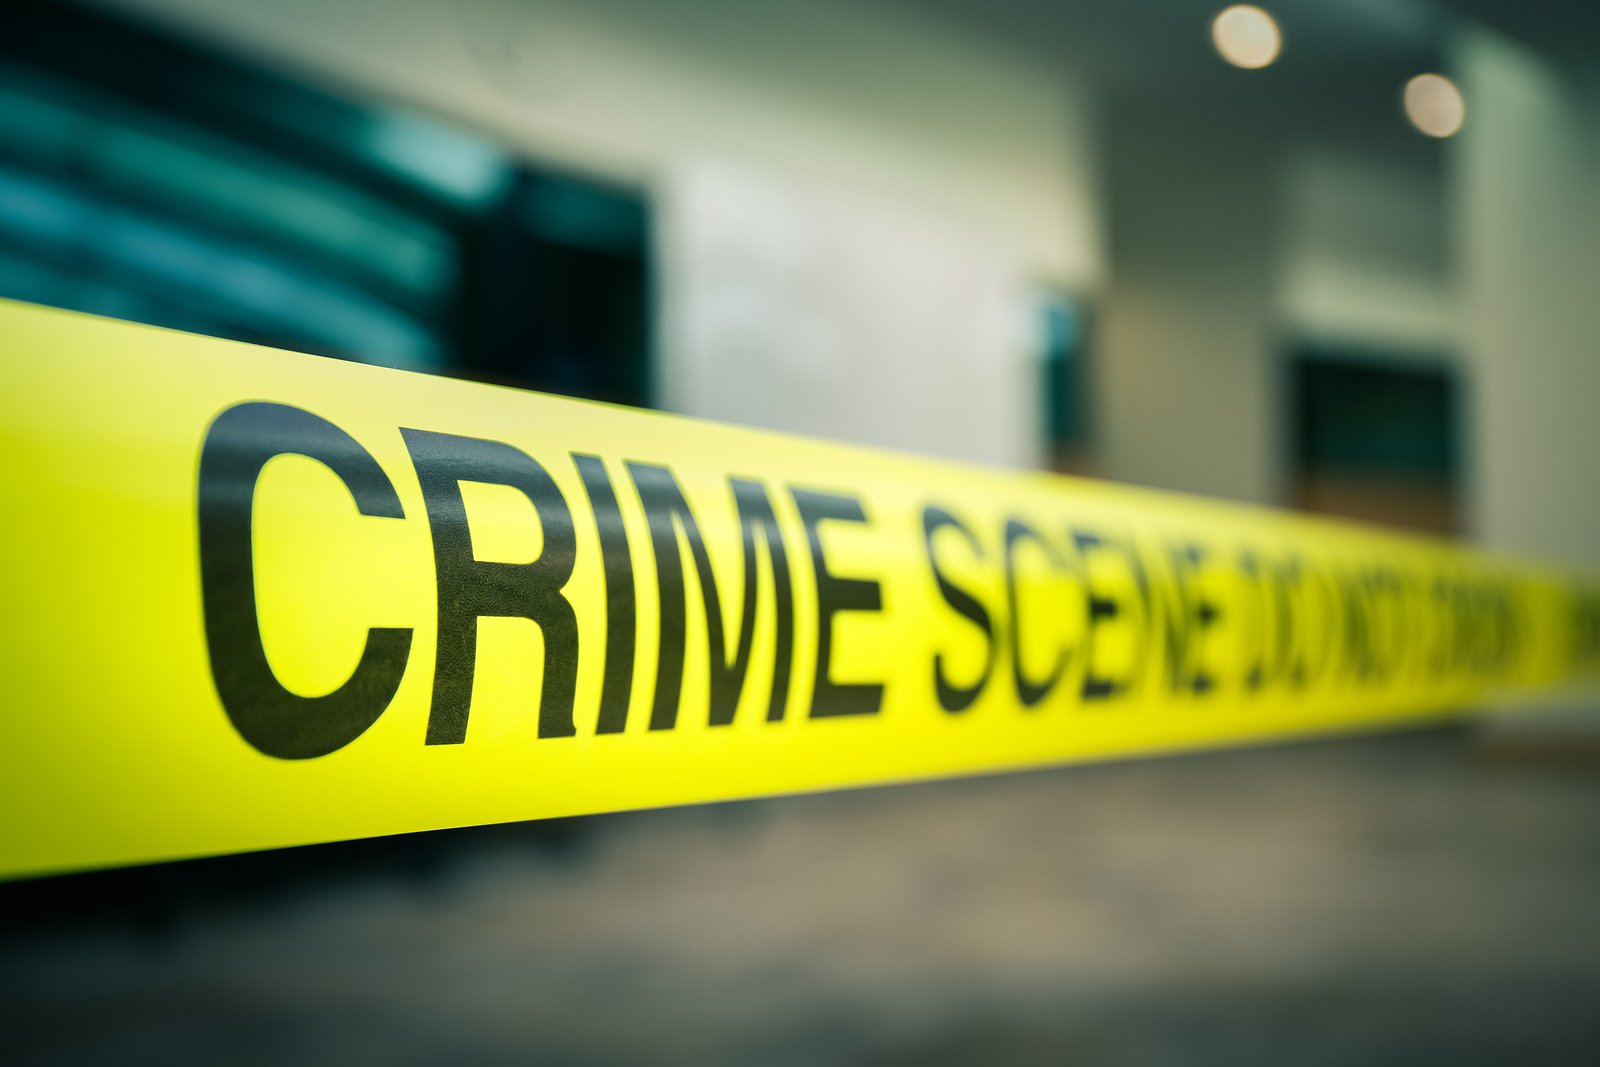 Body Found at Demolished Motel Marion Tuesday